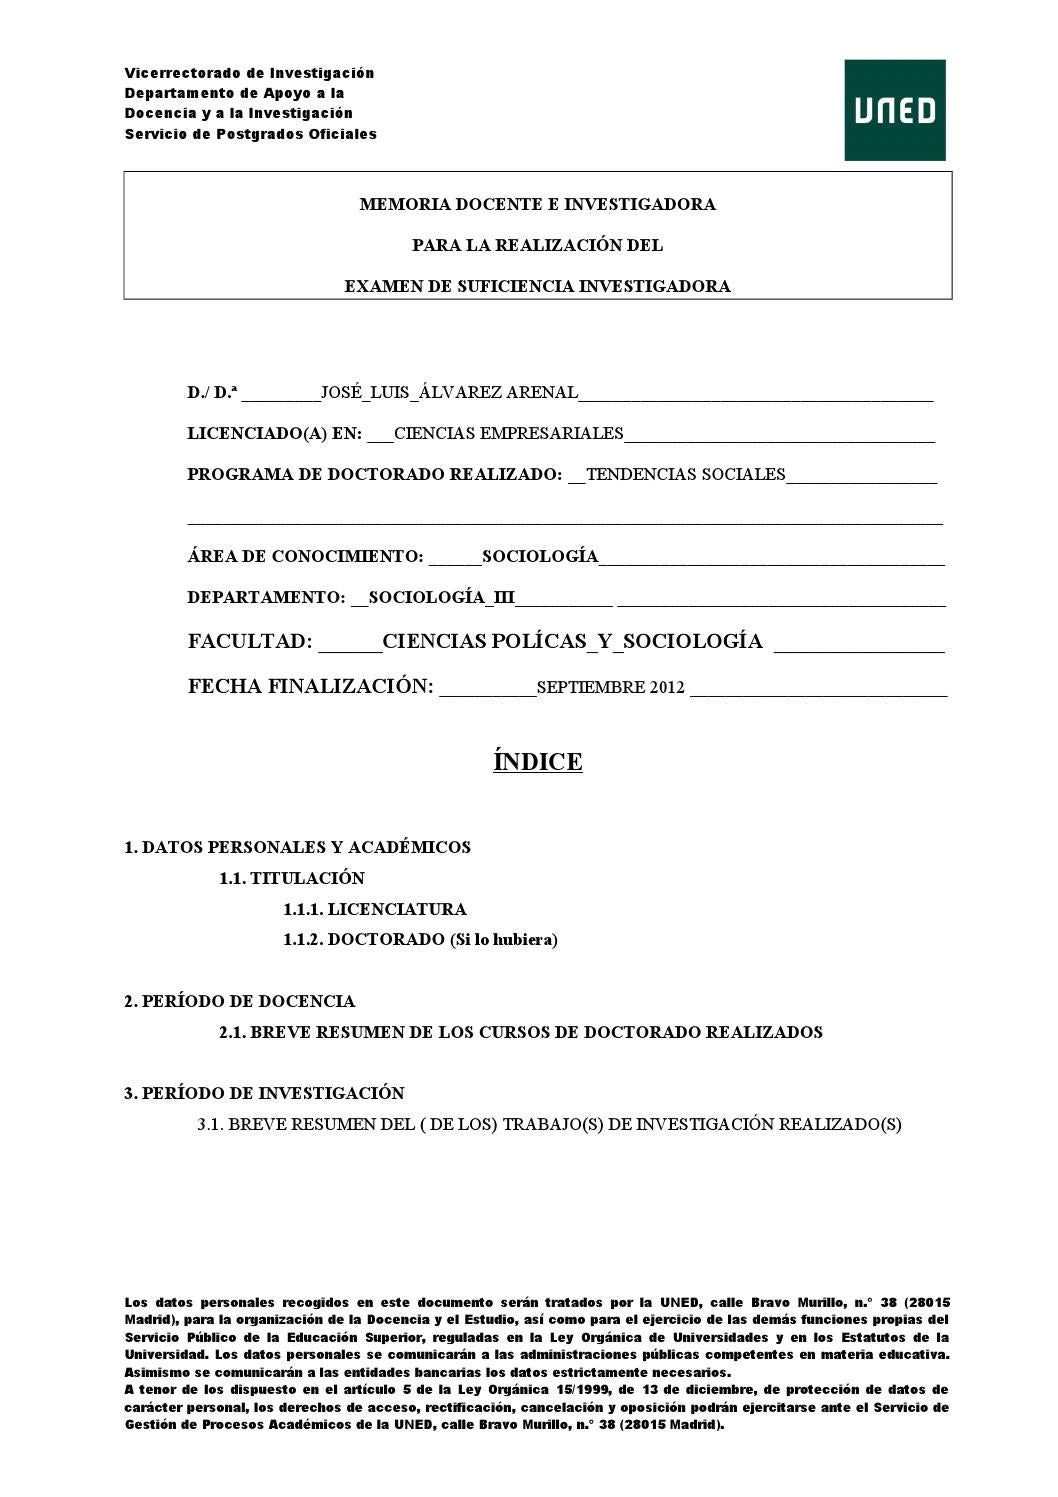 Mem doc1 by luis arenal - issuu